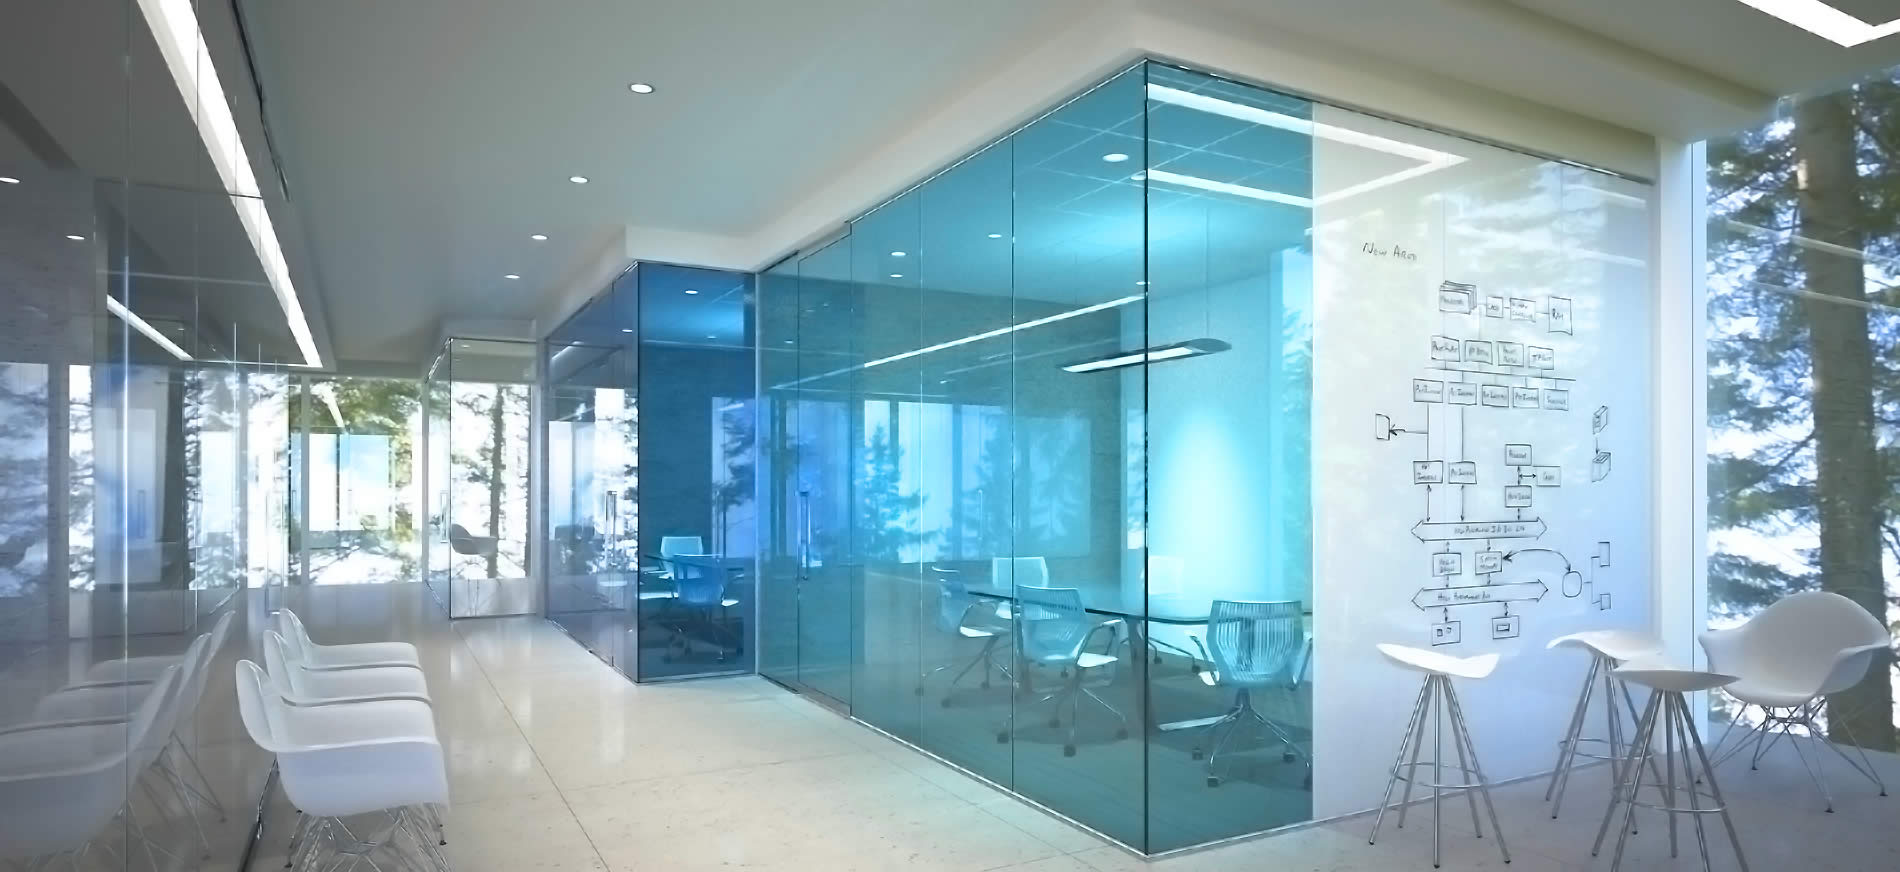 Commercial Domestic Uses Of Glass Panels And Glass Boa